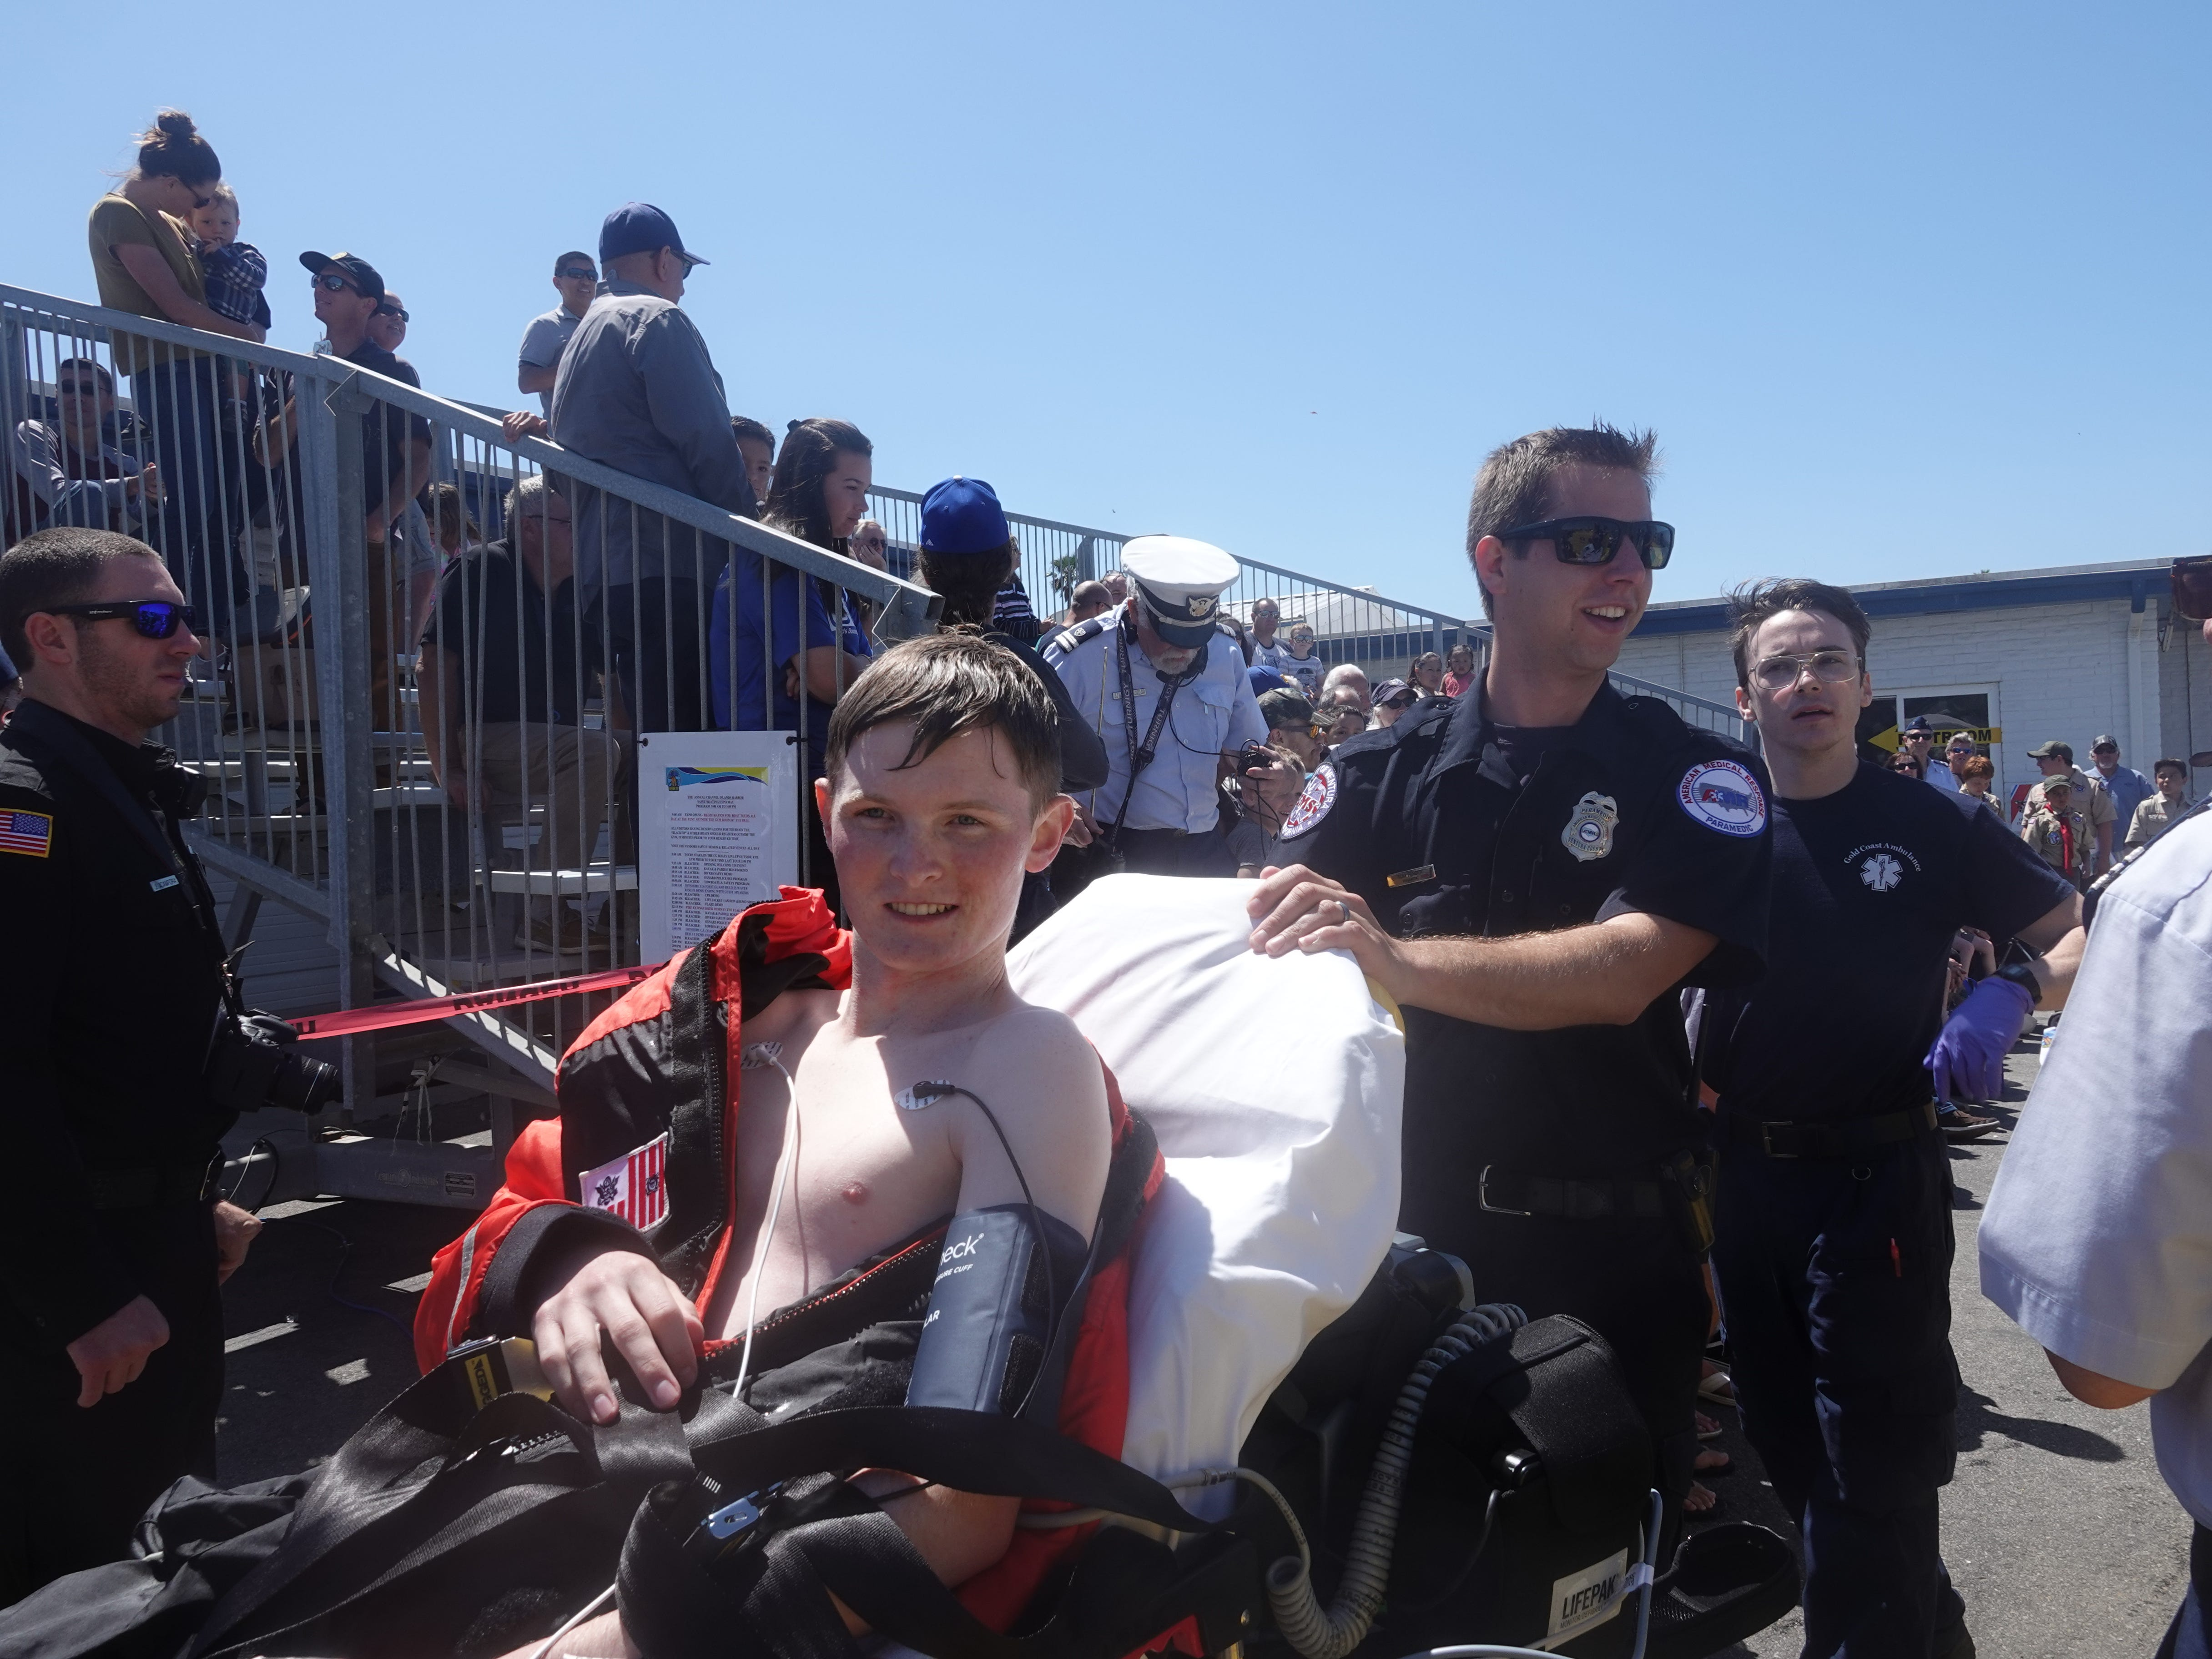 """Finn-Christian Baker, a Coast Guard Auxiliary member, was one of two boaters """"rescued"""" during a demonstration at Saturday's Safe Boating Expo at Channel Islands Harbor."""